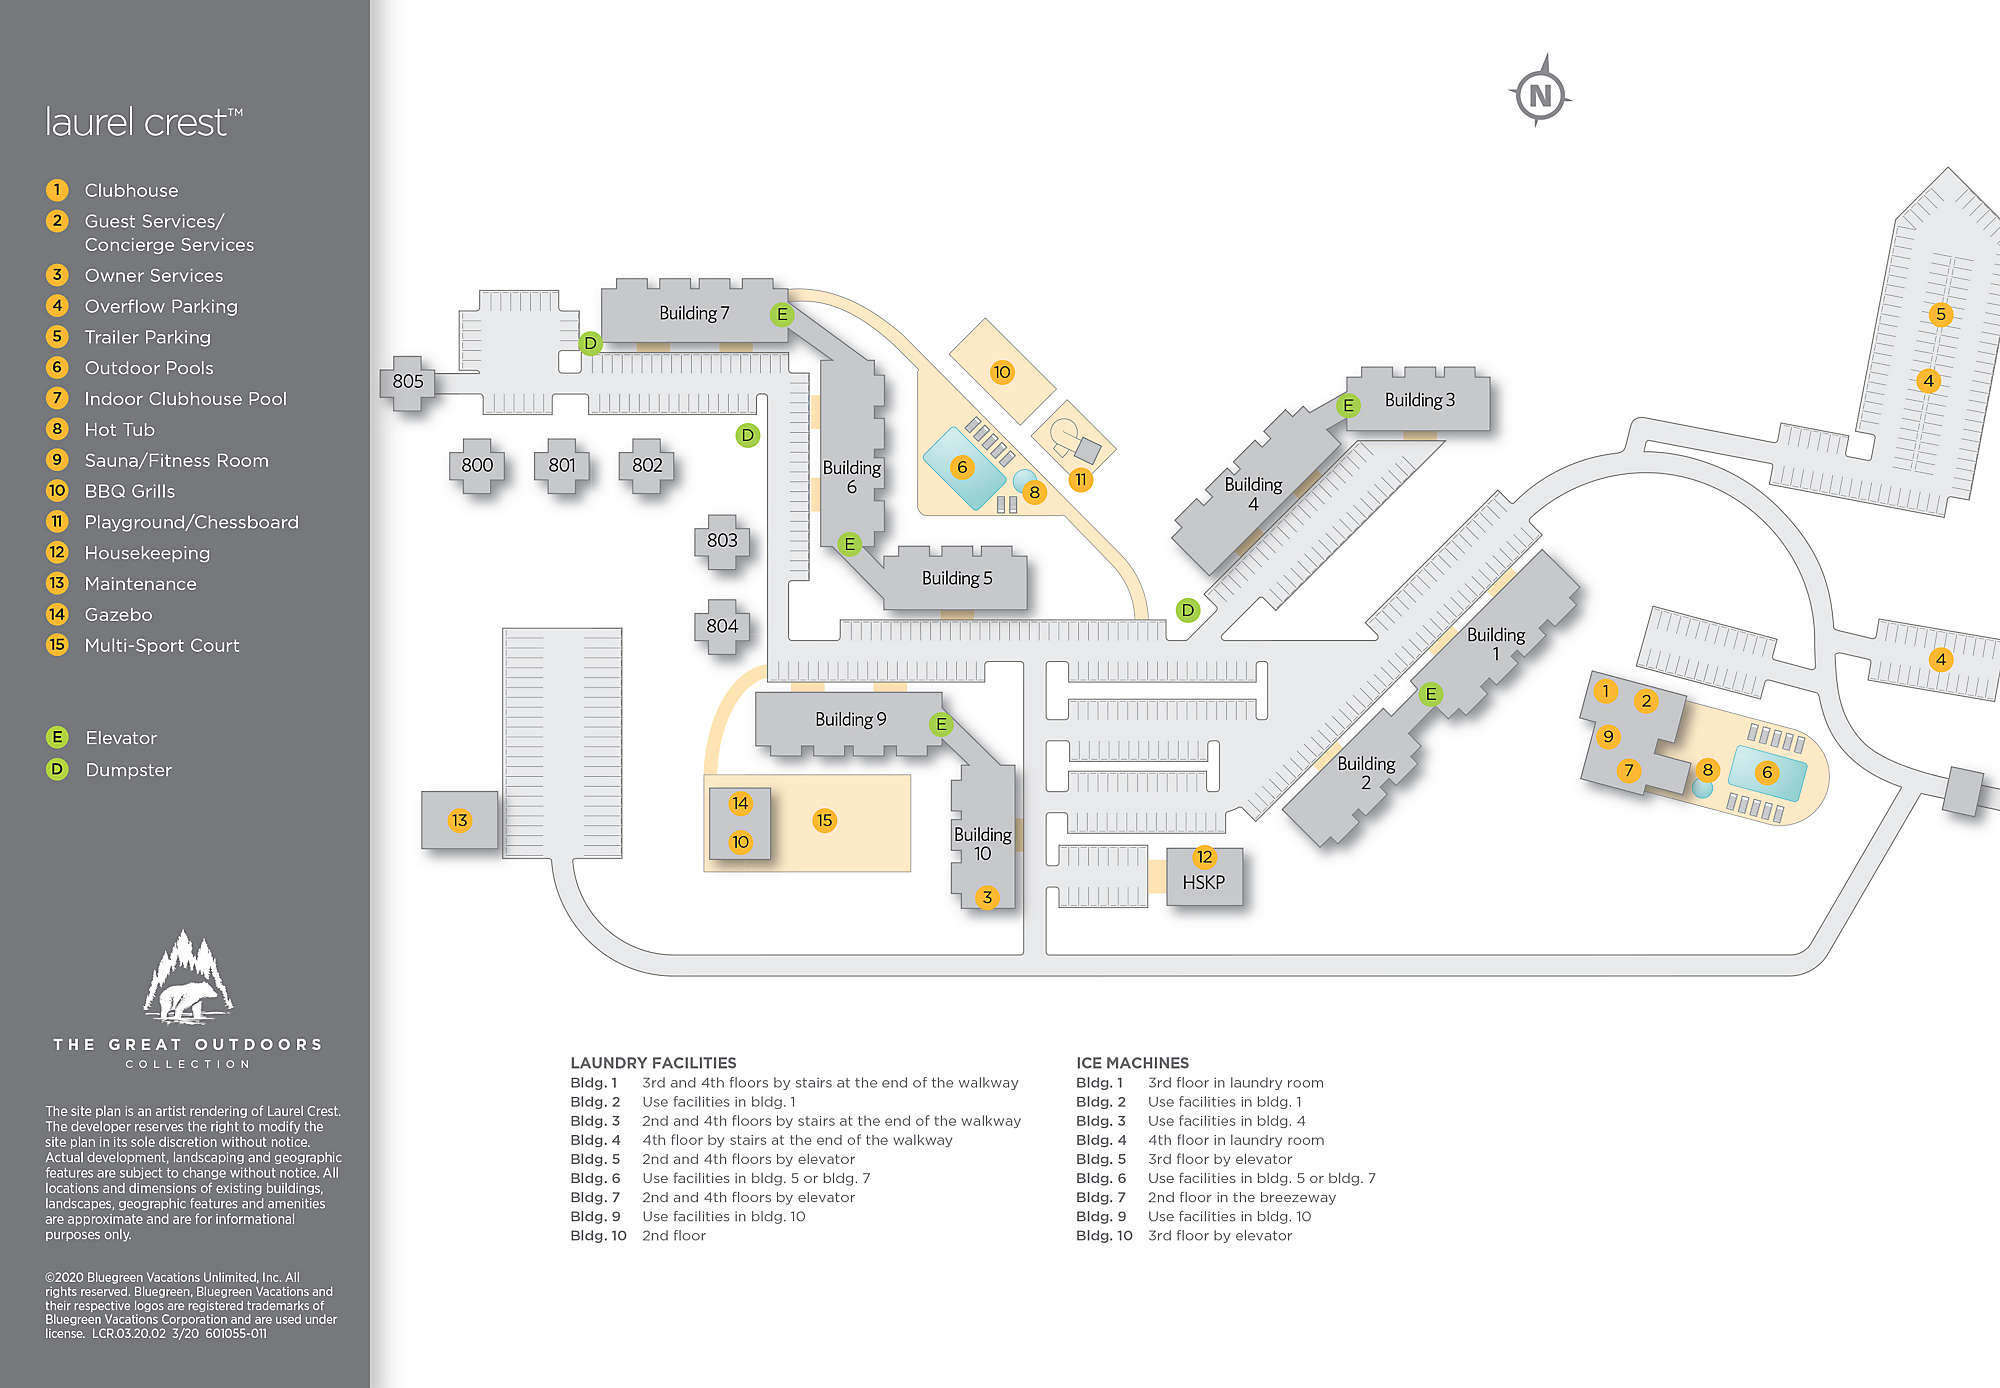 Laurel Crest™ Site Map